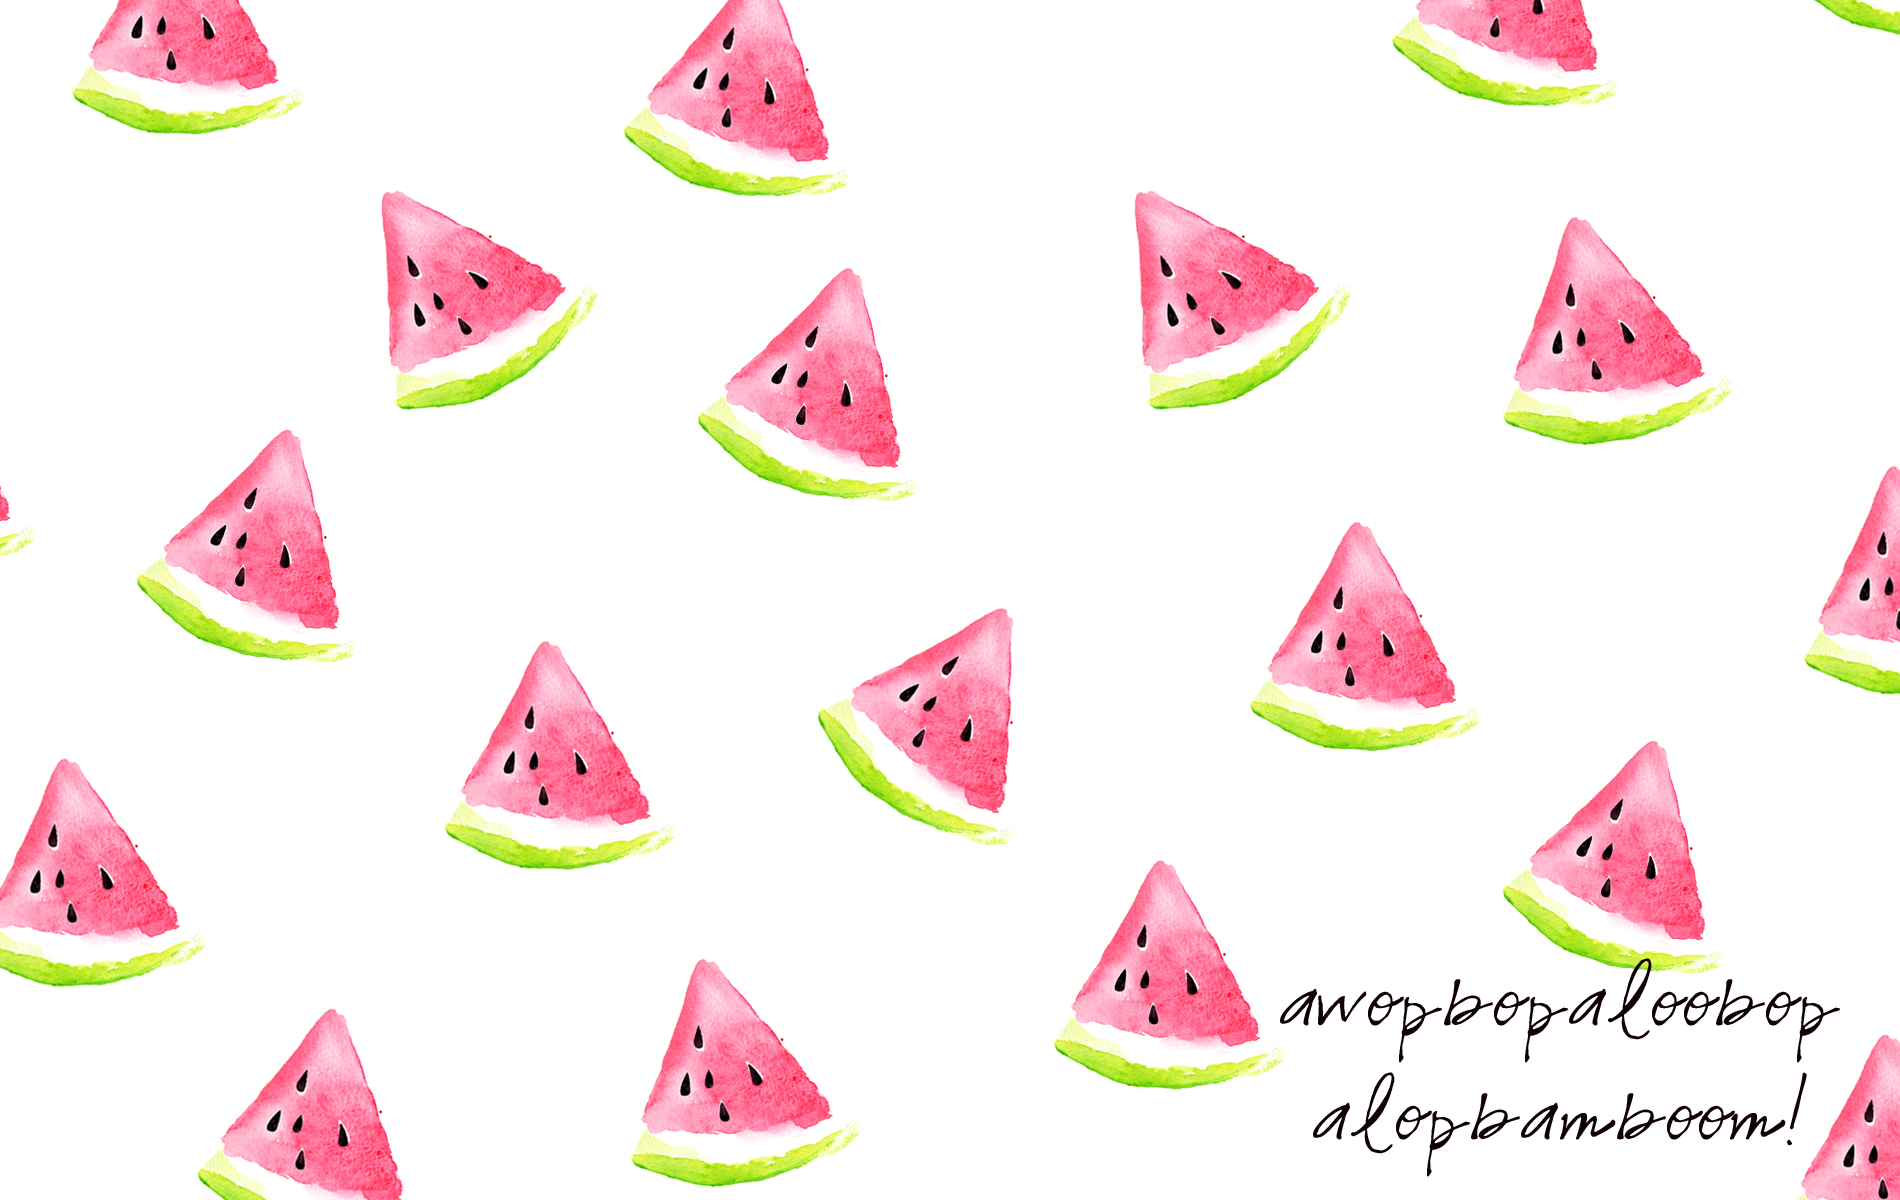 1900x1200 - Watermelon Wallpapers 19